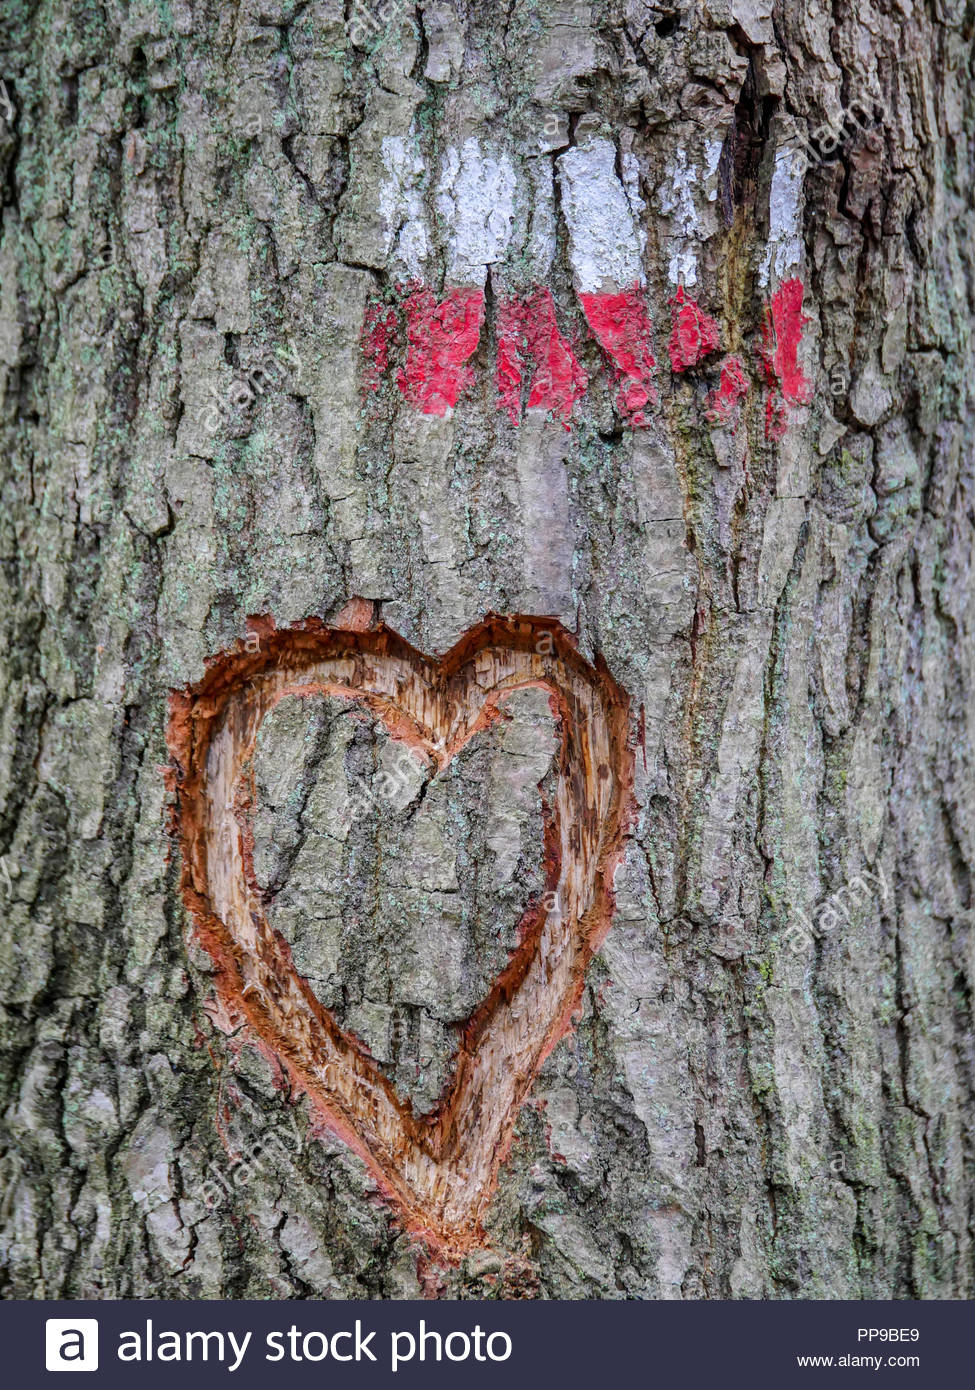 Tree with a red and white marking indicating the correct direction of the long distance walking path in Europe. A heart shape has also been engraved i - Stock Image